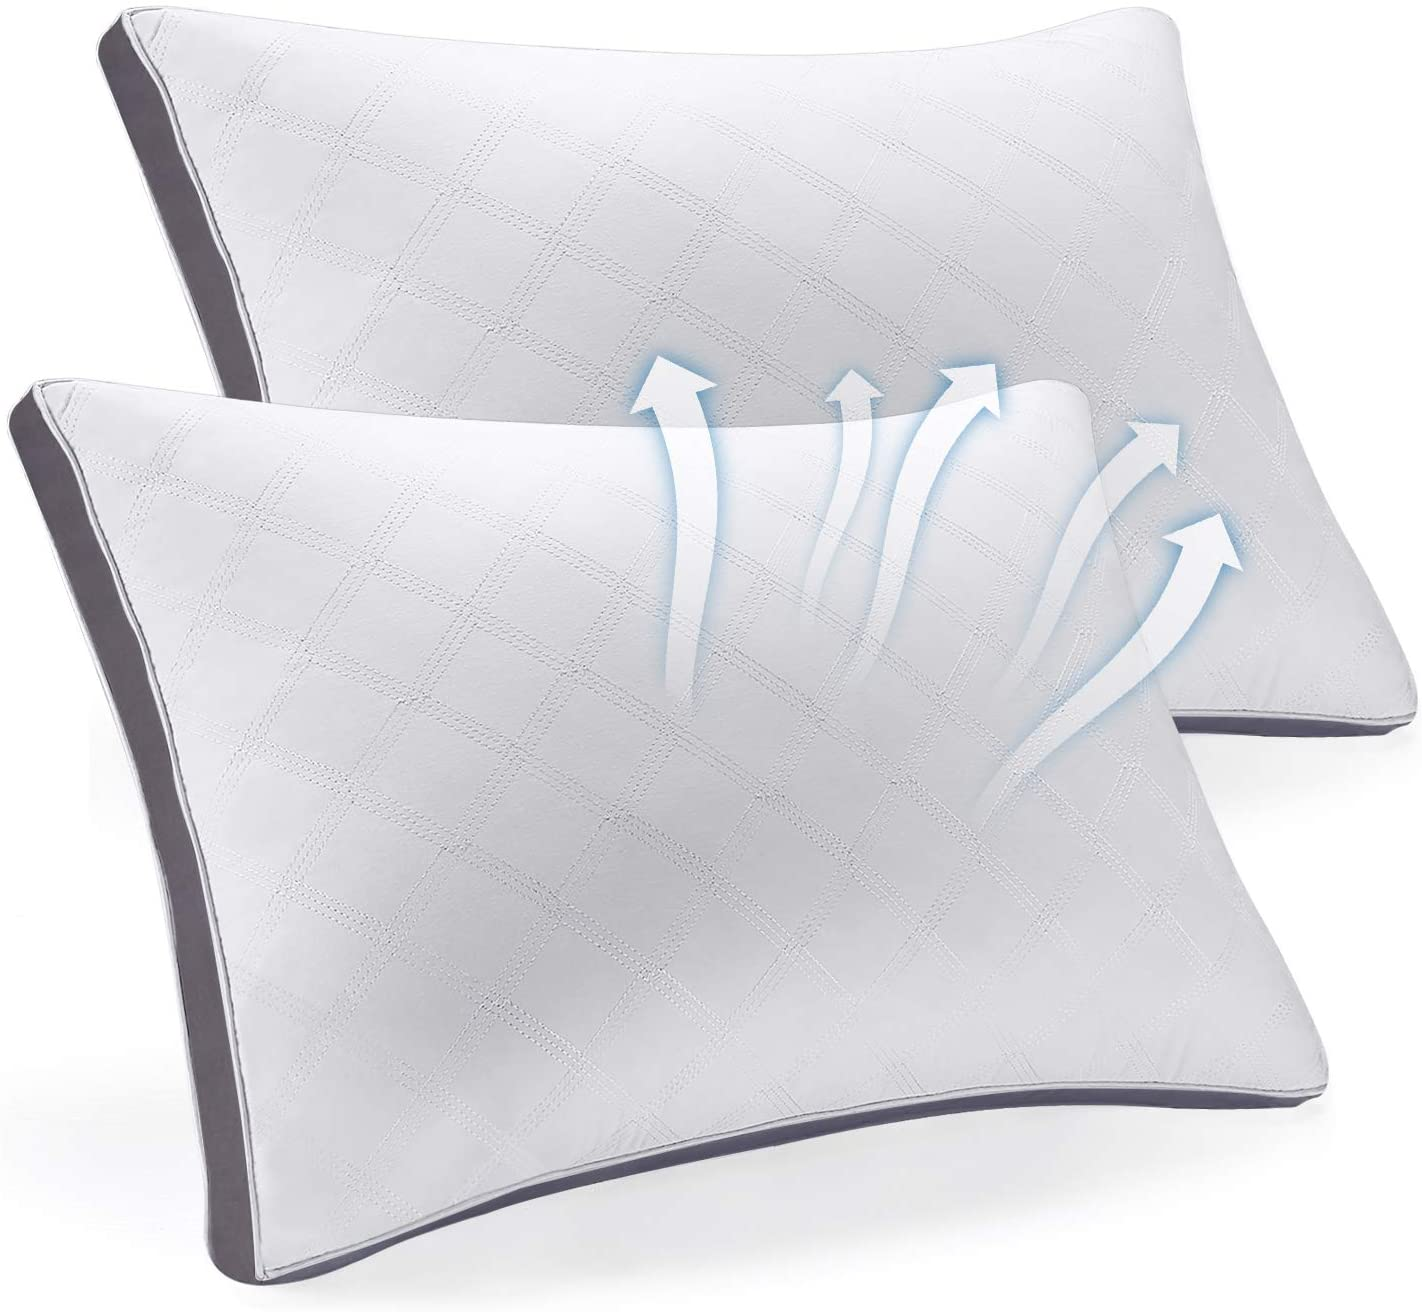 Review of SEPOVEDA Bed Pillows for Sleeping 2 Pack, Hypoallergenic Pillow for Side and Back Sleeper